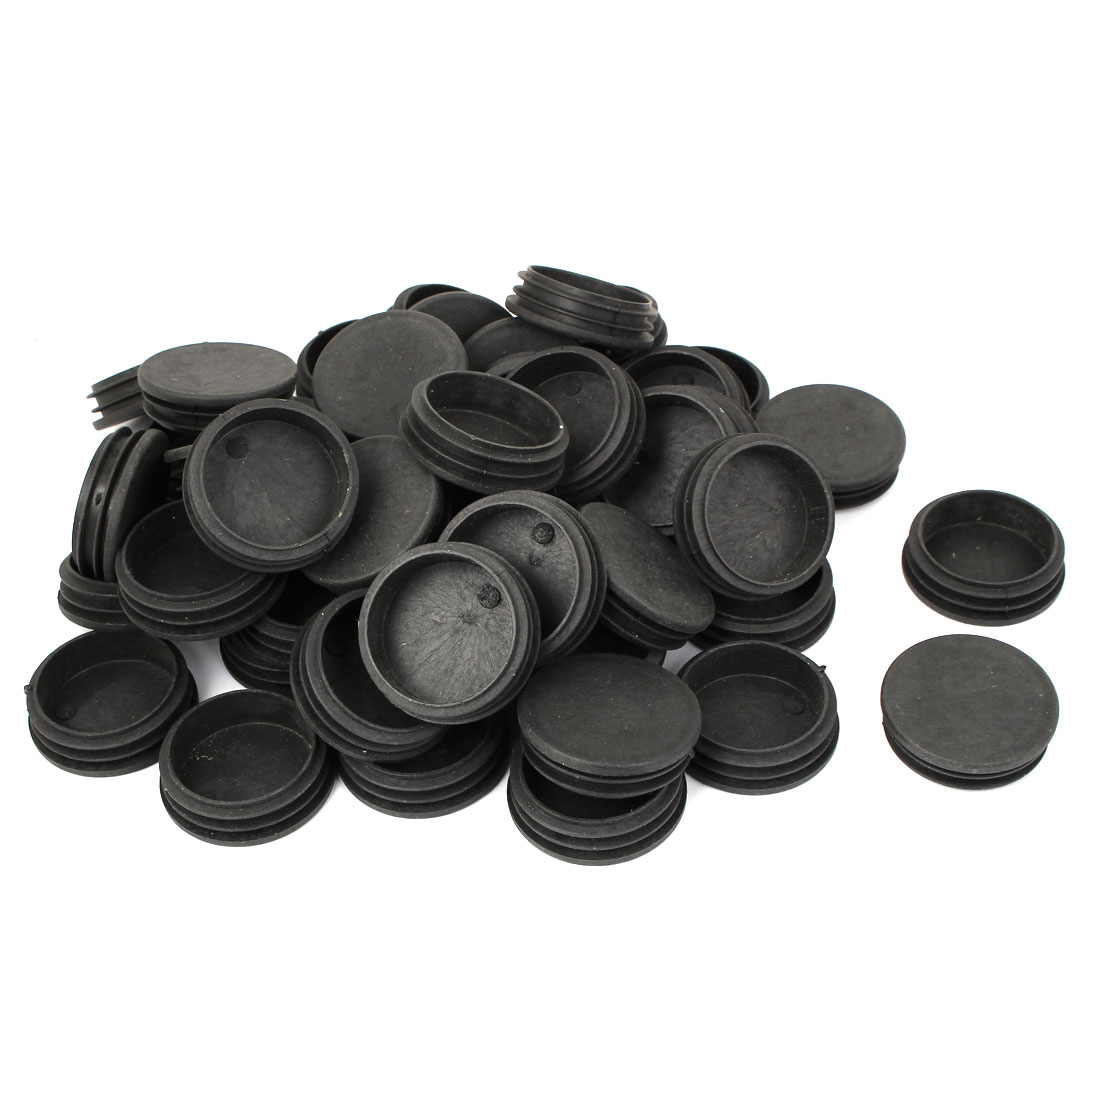 50mm Diameter Plastic Cap Chair Table Legs Round Ribbed Tube Insert 100 Pcs